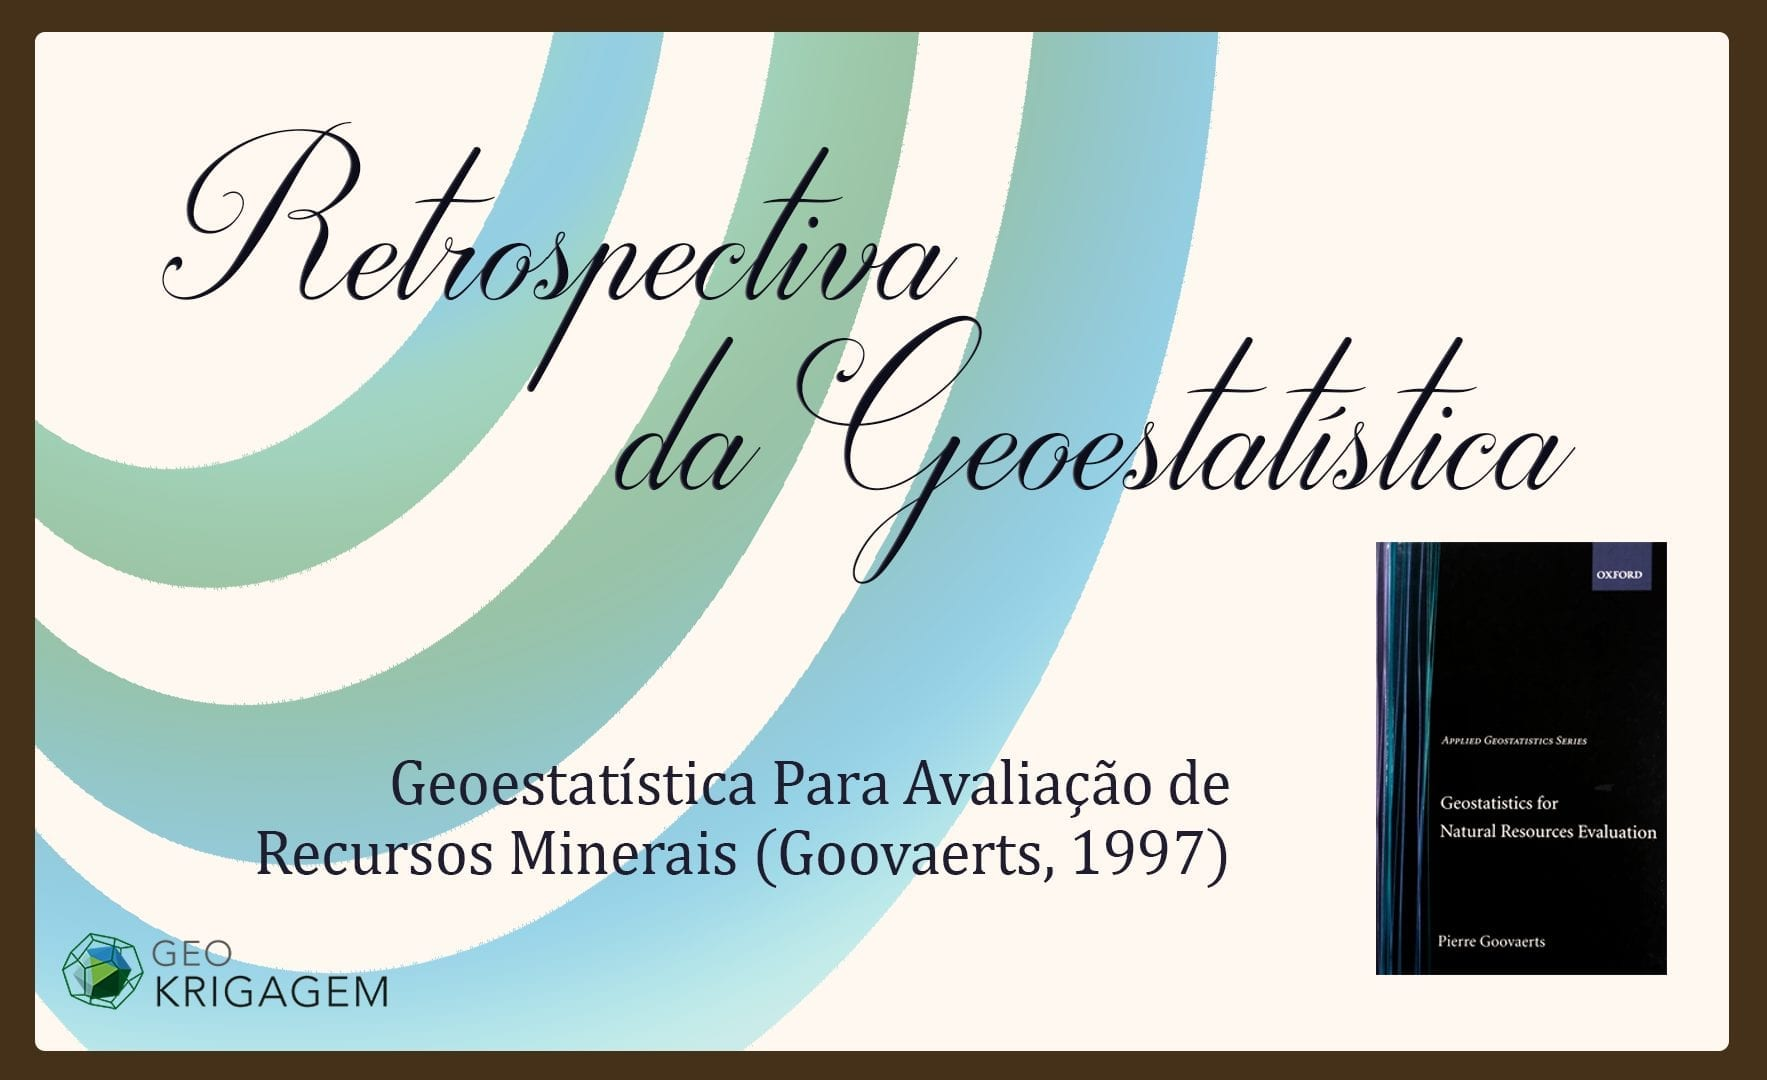 Retrospectiva da Geoestatística; Geostatistics for Natural Resources Evaluation